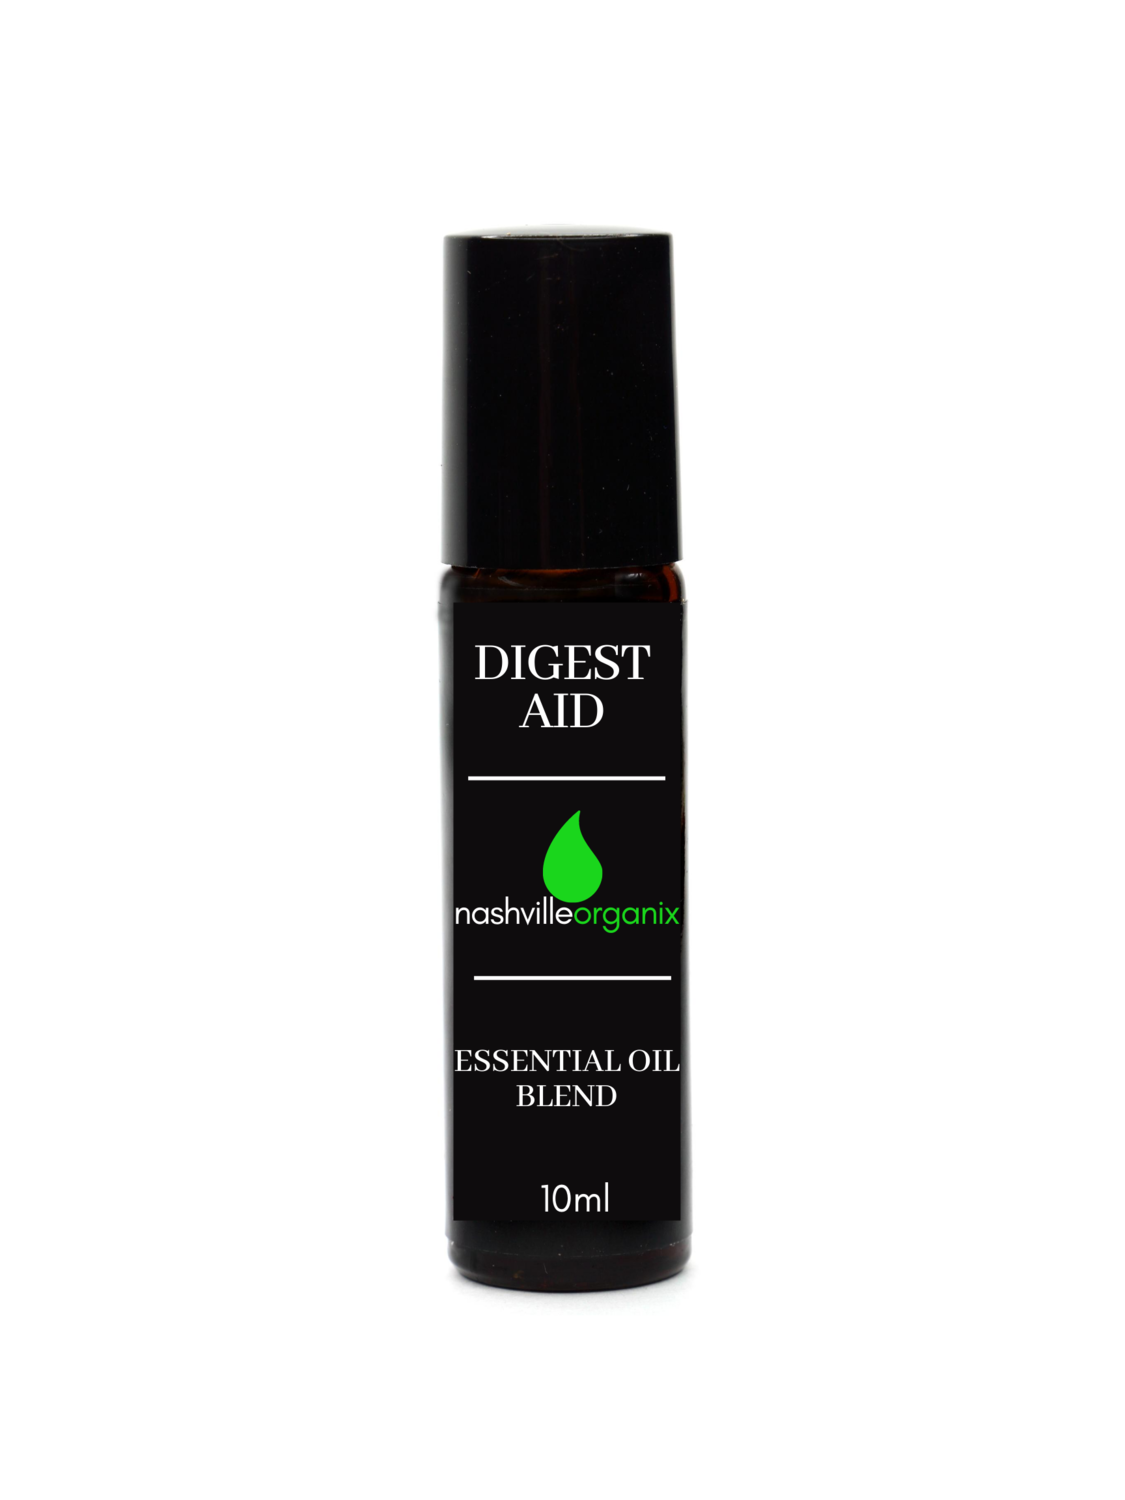 Digest Aid Blend with Cannabis Oil